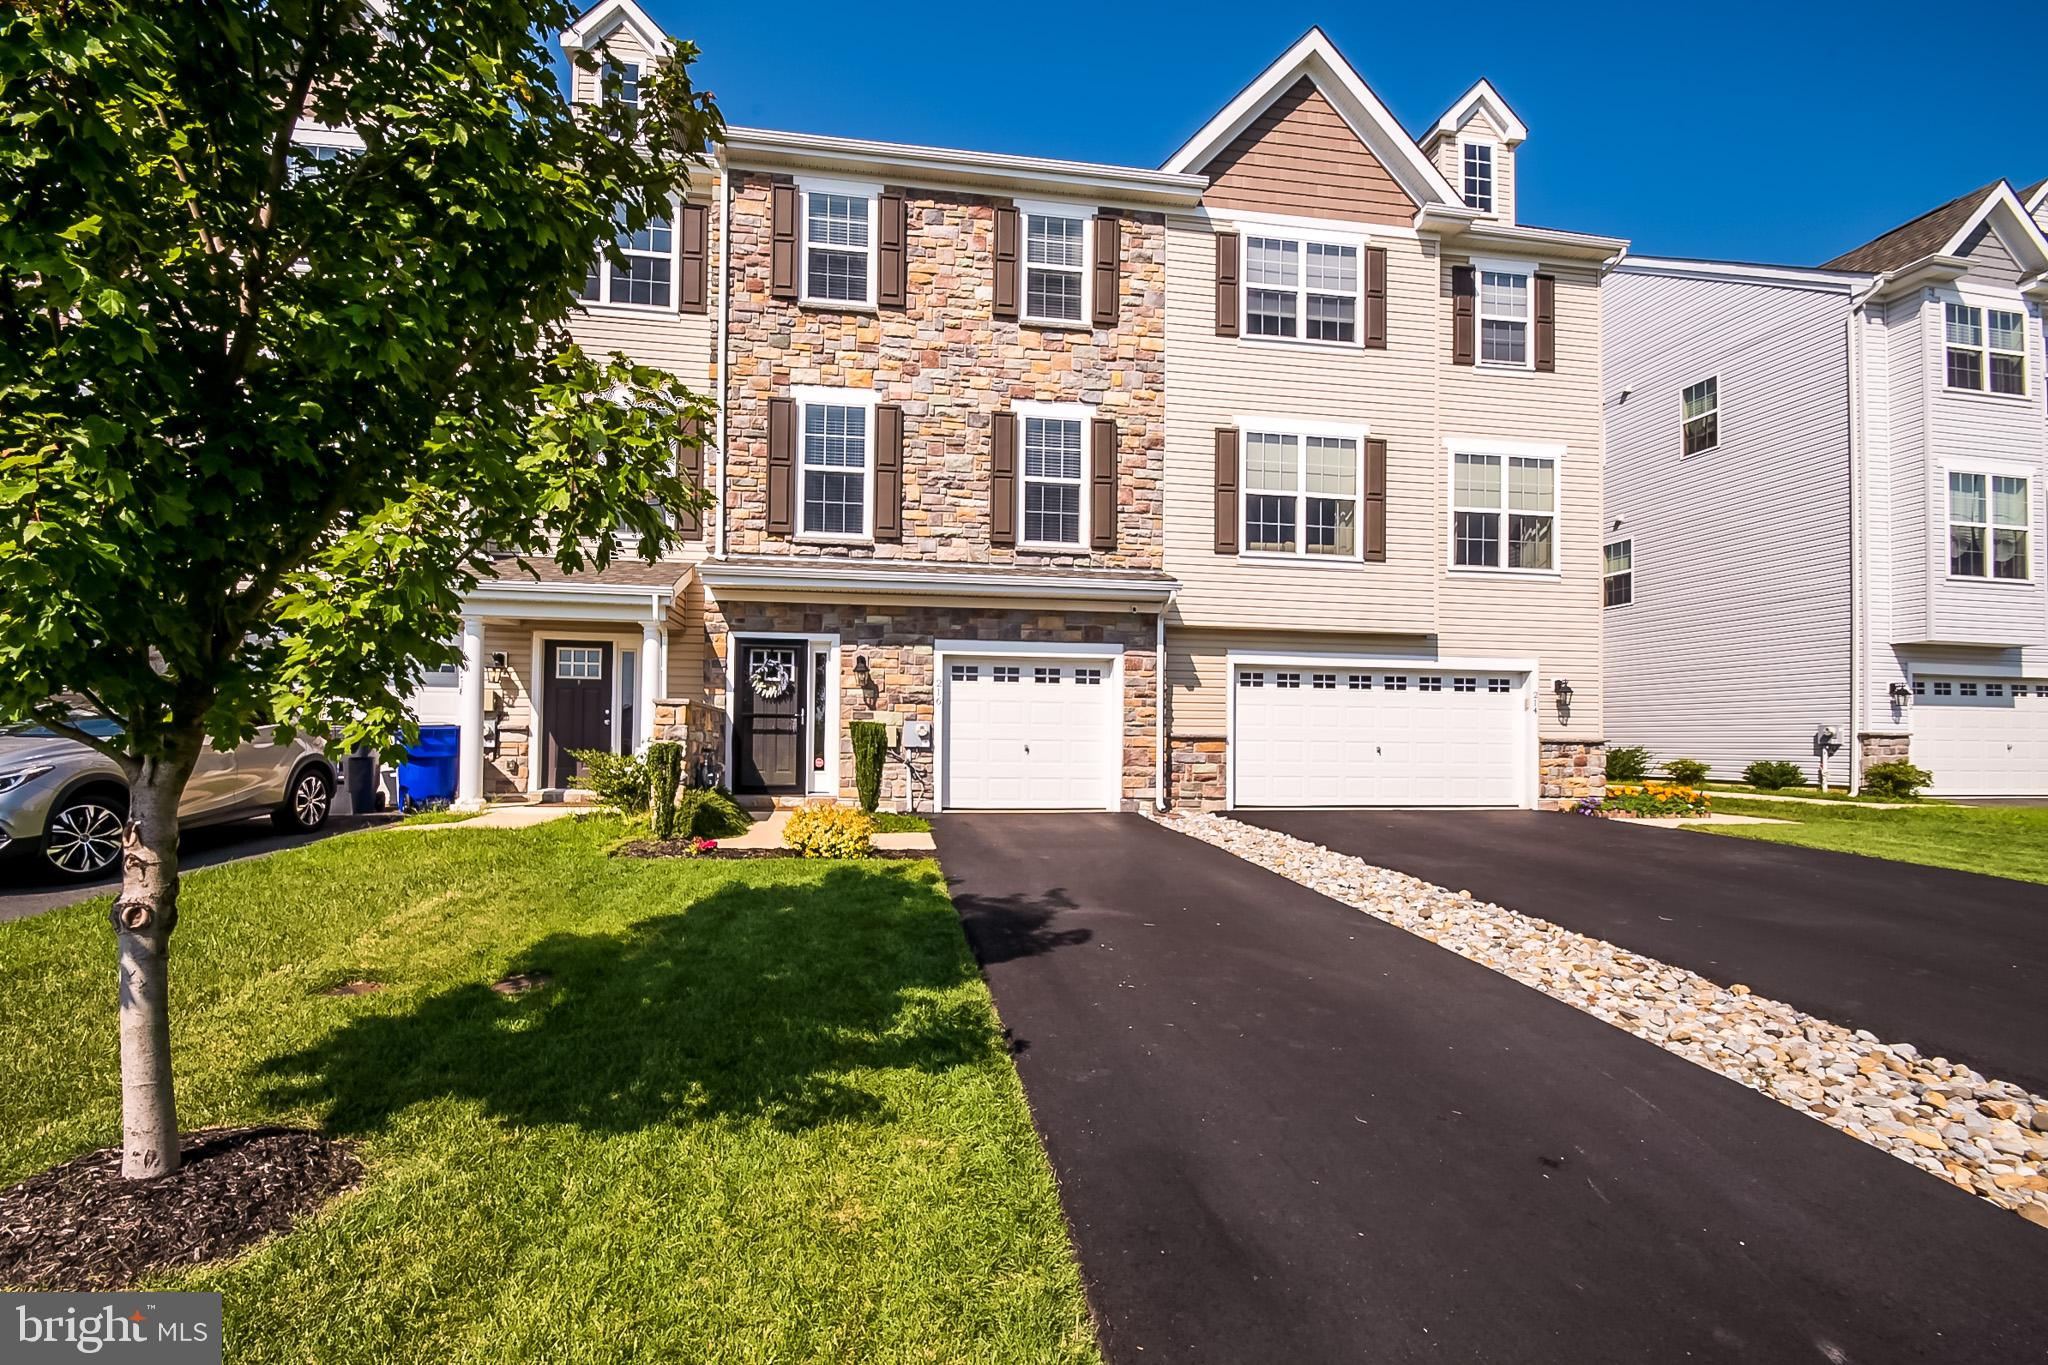 Visit this home virtually: http://www.vht.com/434101487/IDXS - Are you looking for a recently built townhome in the beautiful community of Ponds of Odessa that has a new construction feel, without the wait and price tag?  If so, look no further than 216 Rutland Ave in Middletown!  When you arrive for your tour, notice how the bold multicolor stone front of this home pops out from the rest! Park in front of the garage and enter through the main entryway to be greeted by a stairwell, garage entrance to your right and hallway that leads to a backroom.   This backroom has so much potential!  Currently used as a utility room complete with laundry, this room can also be used as an office, playroom or 4th bedroom!   Before leaving the first floor, step out the sliding glass doors to the rear paver patio and feel relaxed as you enjoy the seclusion of the tree lined and fenced in rear yard.  On the main level, you will be amazed by the open floor plan concept perfect for entertaining!  First, continue imagining the outdoor entertaining possibilities as you exit through the sliding glass doors to the newly constructed and maintenance free composite deck with white vinyl railing!  Bring the entertaining inside to enjoy the dining area that connects to the functional kitchen complete with an island.  Enjoy the open floorplan concept of the kitchen and dining as it naturally flows into the family room where you can take the stairs to the third level.  For the final level of your tour, check out the large master bedroom complete with a walk-in closet and full bathroom.  Make your way to the front of the home where you will find two perfectly sized bedrooms and a full bath.  If you want to be a part of the thriving Middletown community where shopping, restaurants and entertainment are all at your fingertips, than this is the home for you!  Do not want any longer to schedule your tour!